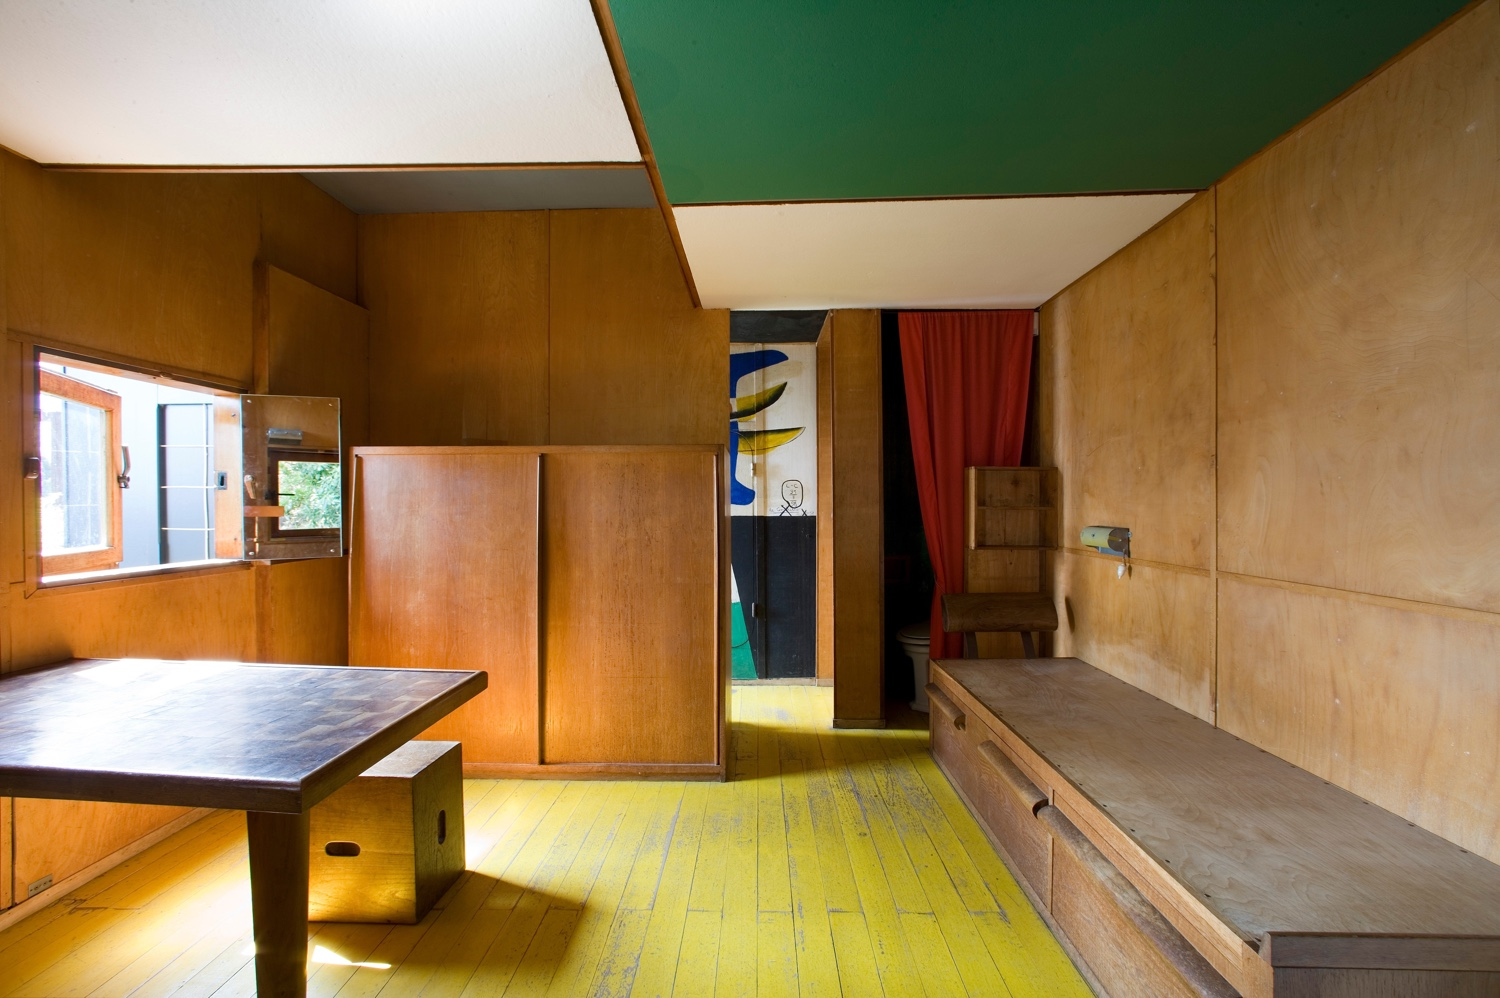 Interior at Cabanon de Le Corbusier. Photo by Oliver Martin-Gambier © FLC/ADAGP.